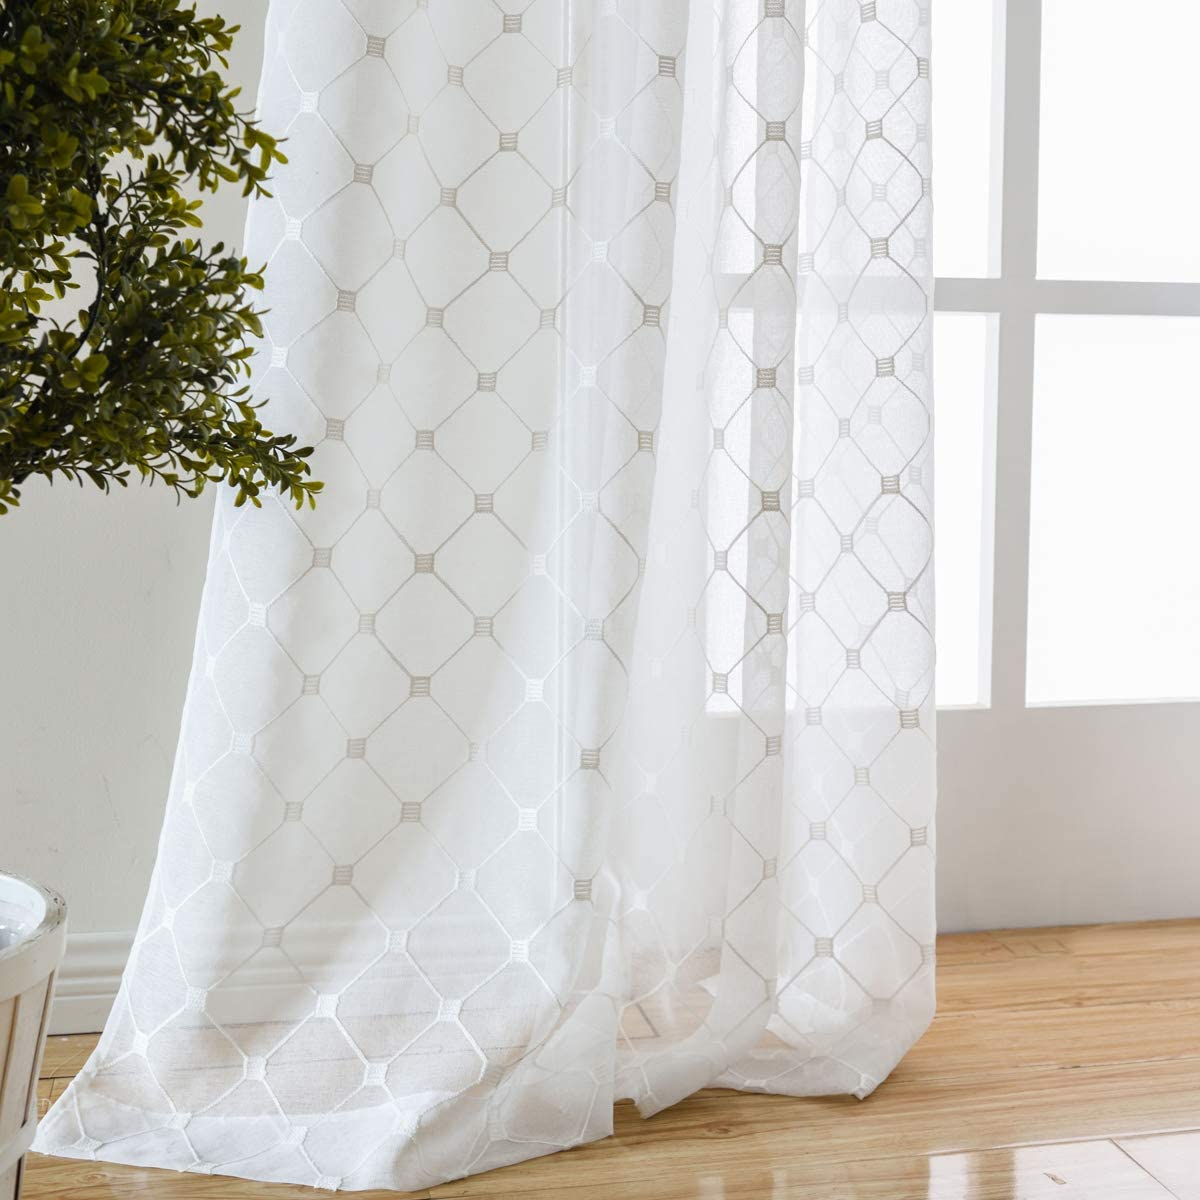 "Taisier Home Off White Sheer Curtains Embroidery Trellis Design Grommet Curtains 84 Inches Long for French Doors 2 Panels (2 x 52 Wide x 84"" Long) White/Silver Embroidery"